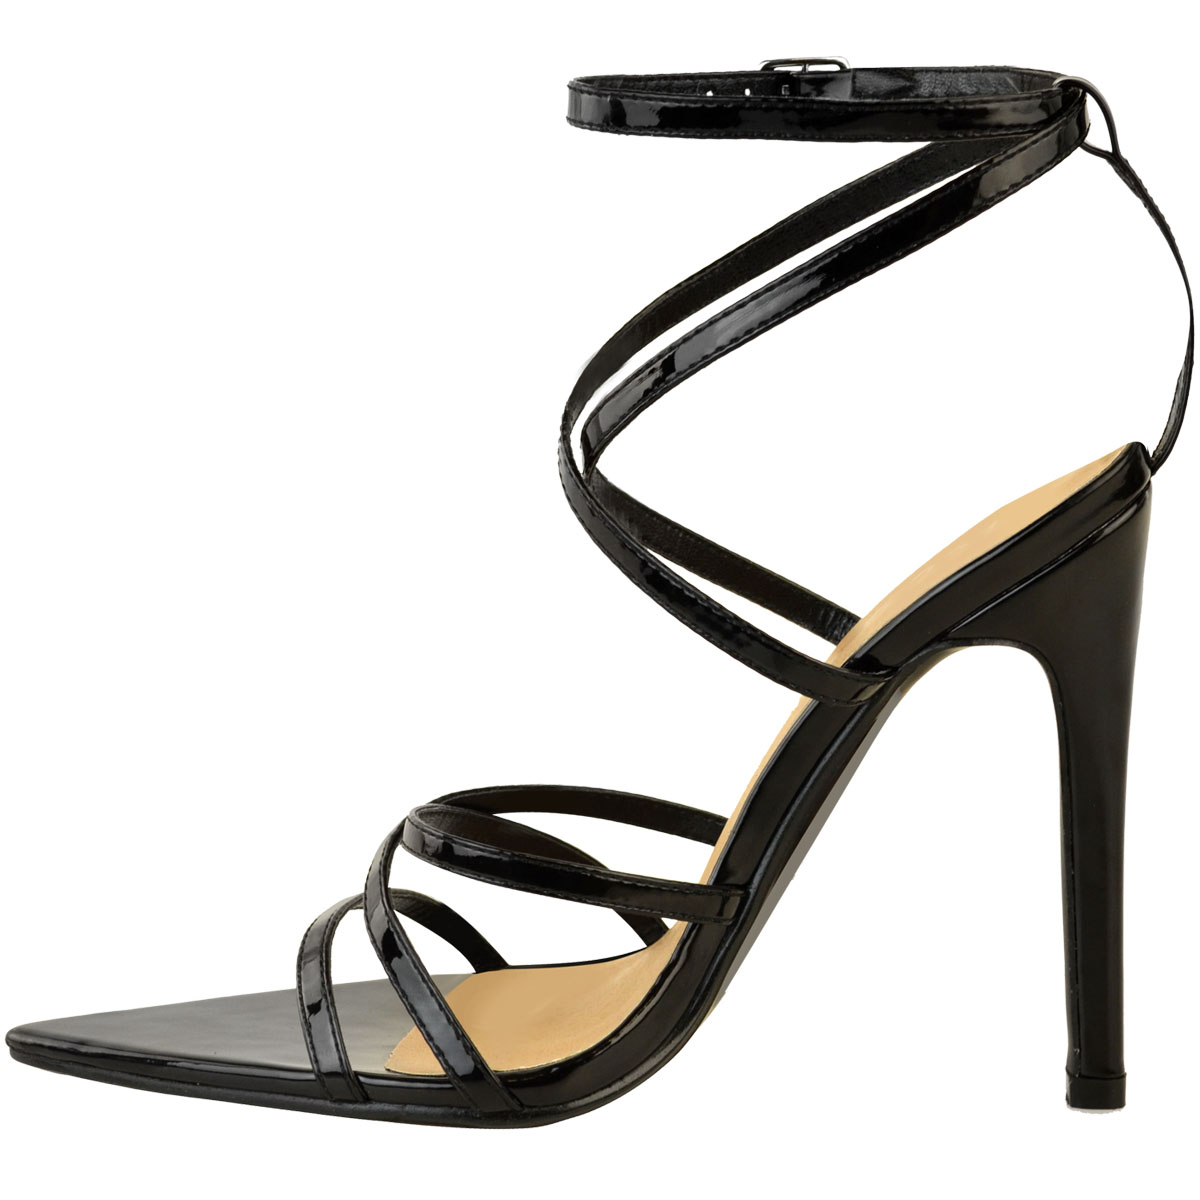 Womens-Ladies-Pointed-Barely-There-High-Heels-Sandals-Strappy-Black-Patent-Size thumbnail 5